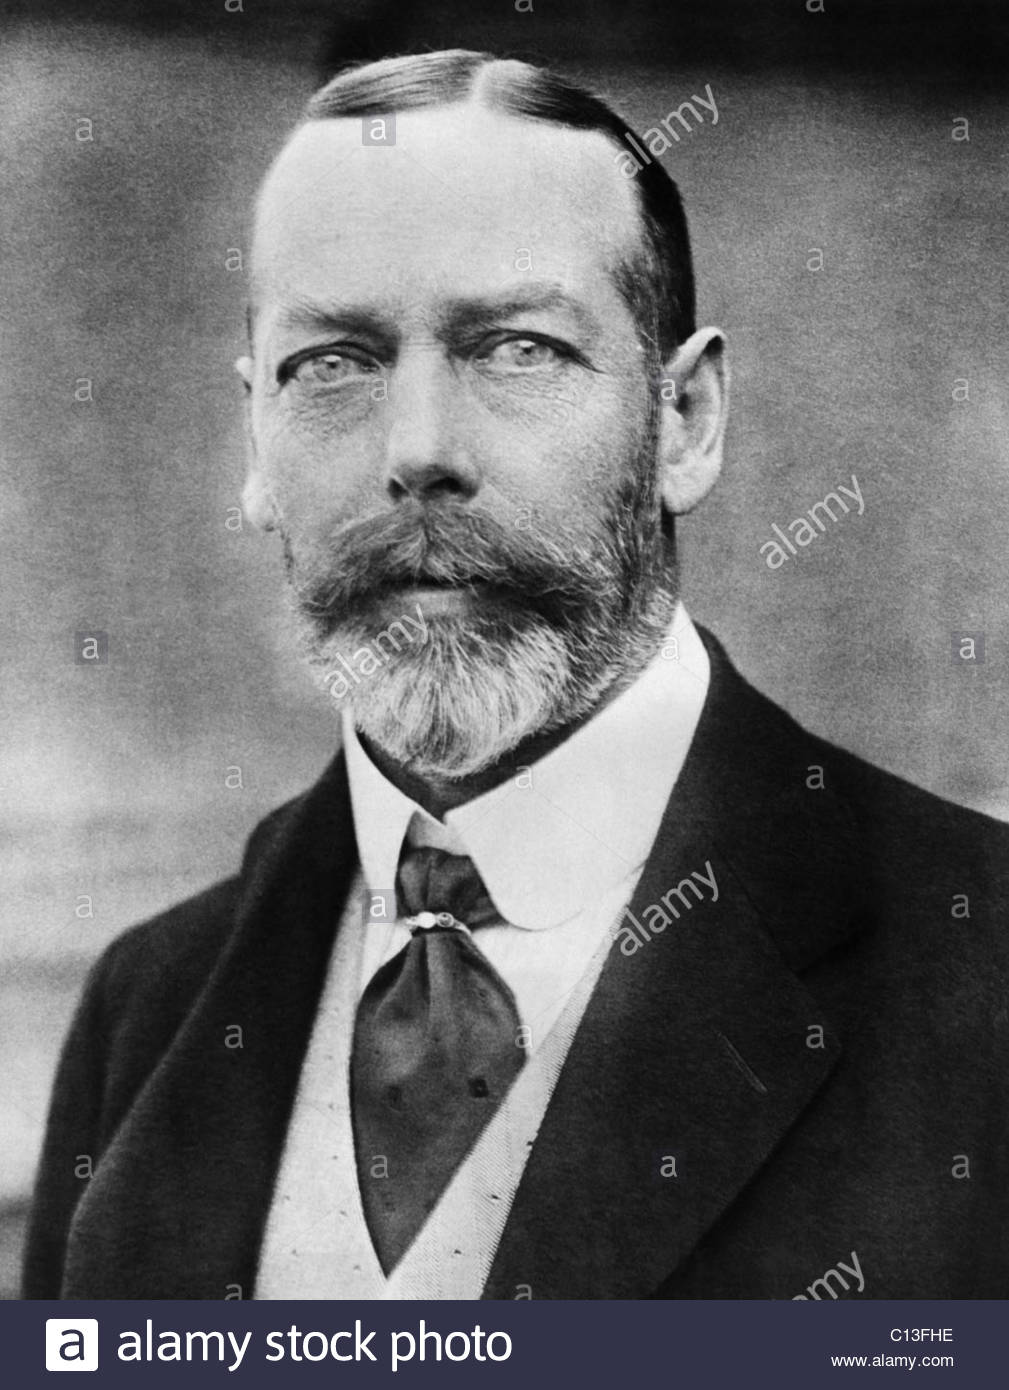 British Royalty. King George V Of England, Circa 1920s Stock Photo.